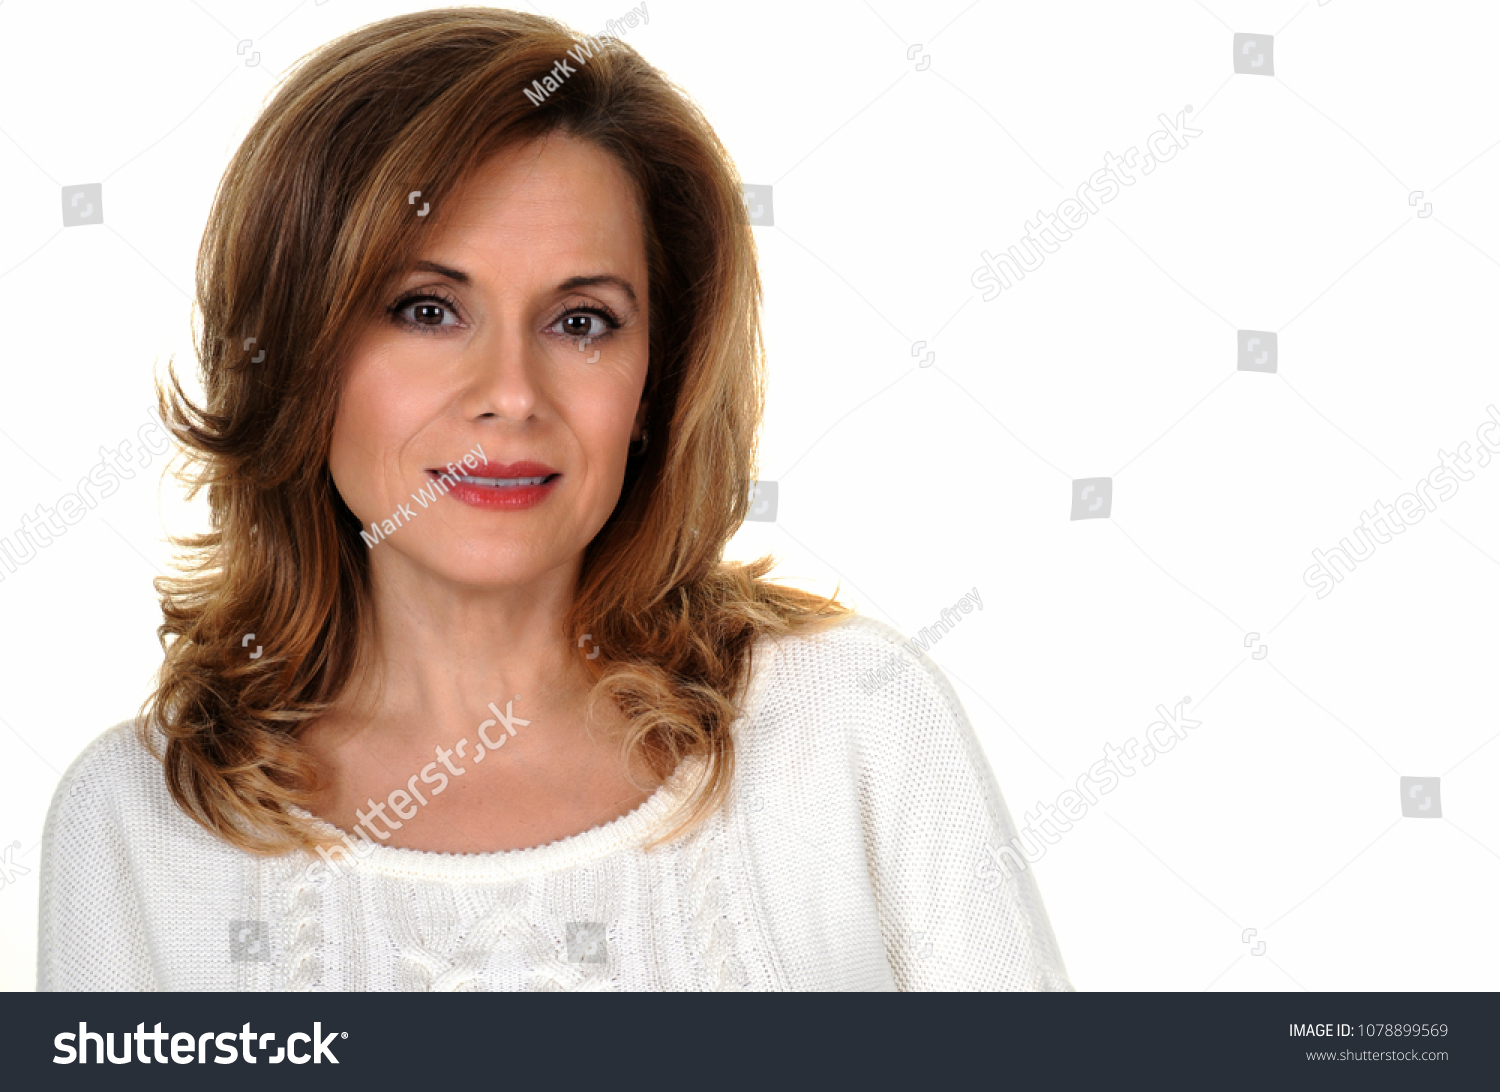 stock-photo-portrait-of-an-attractive-ma